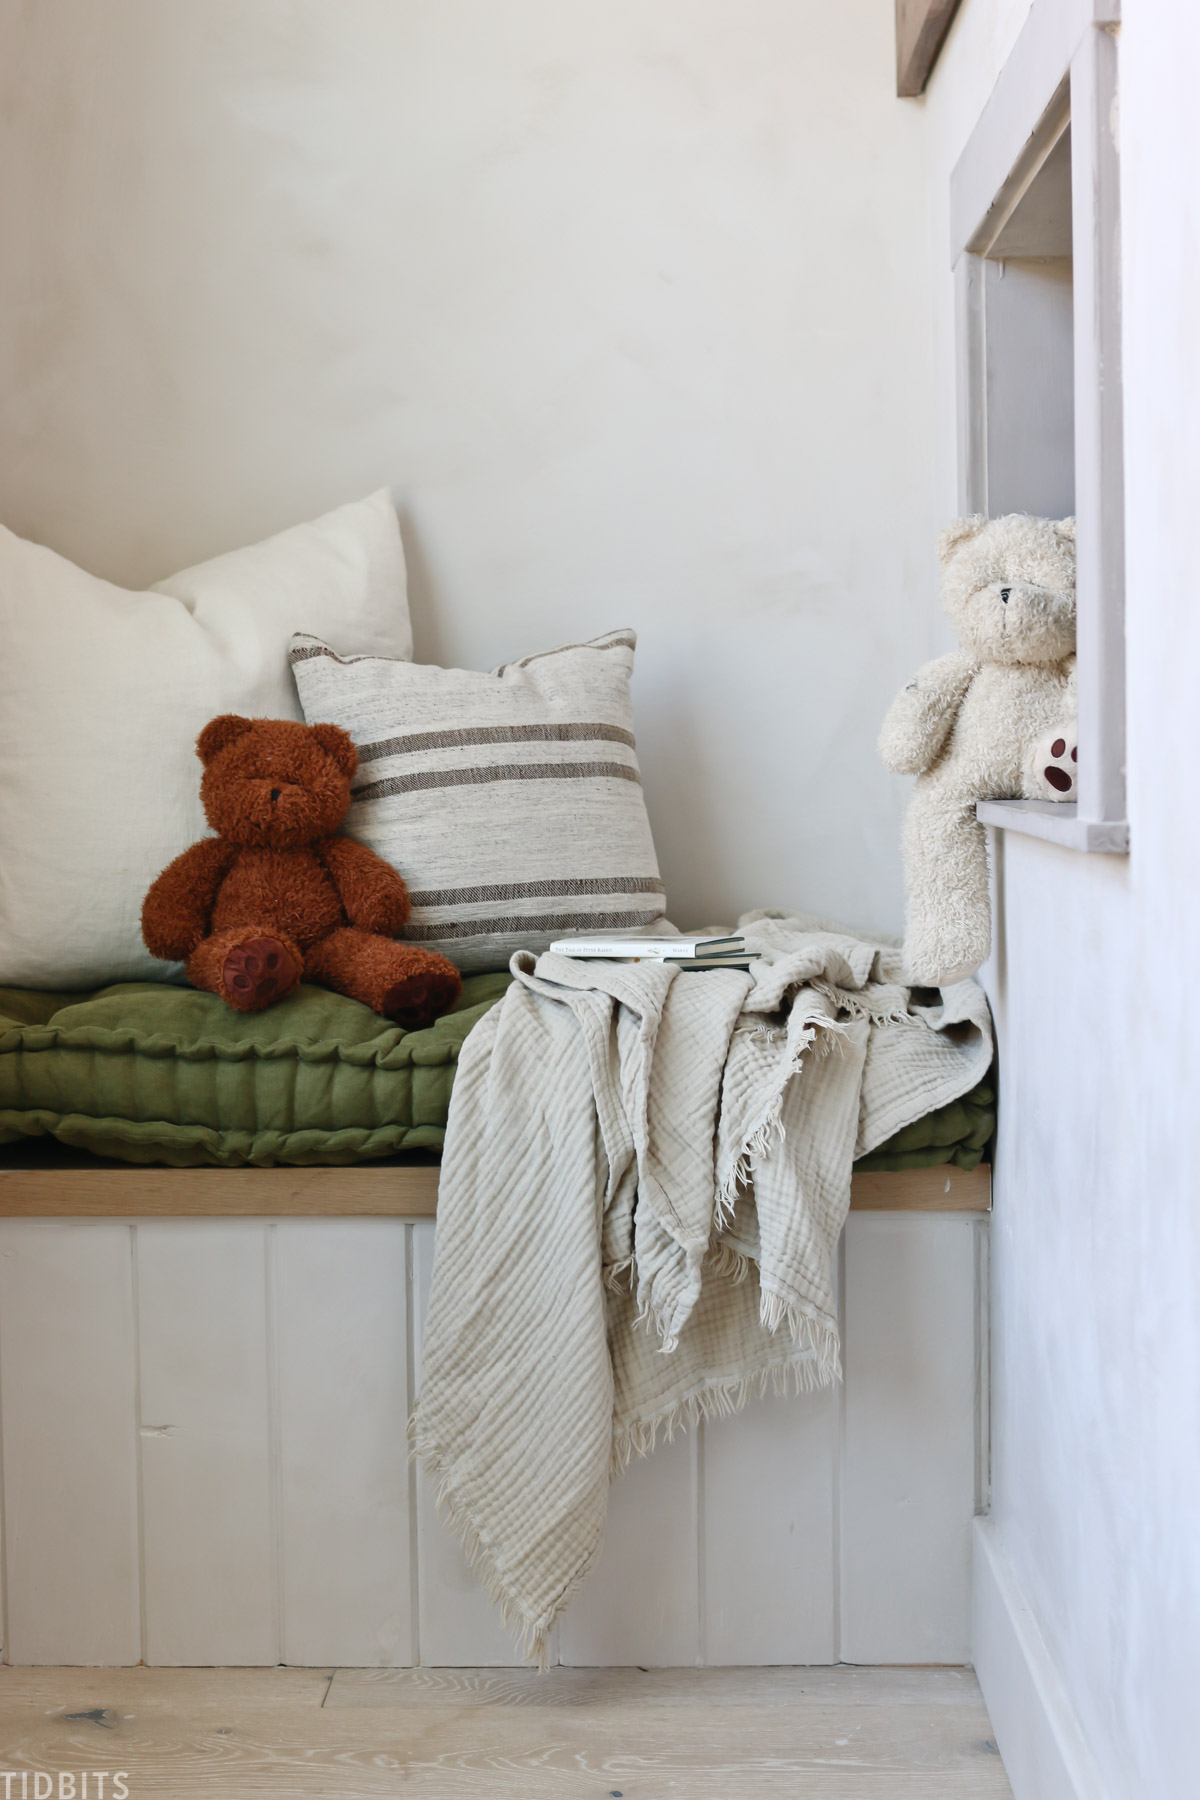 blanket hutch that has a teddy bear, pillows, and blanket on top of a bench cushion